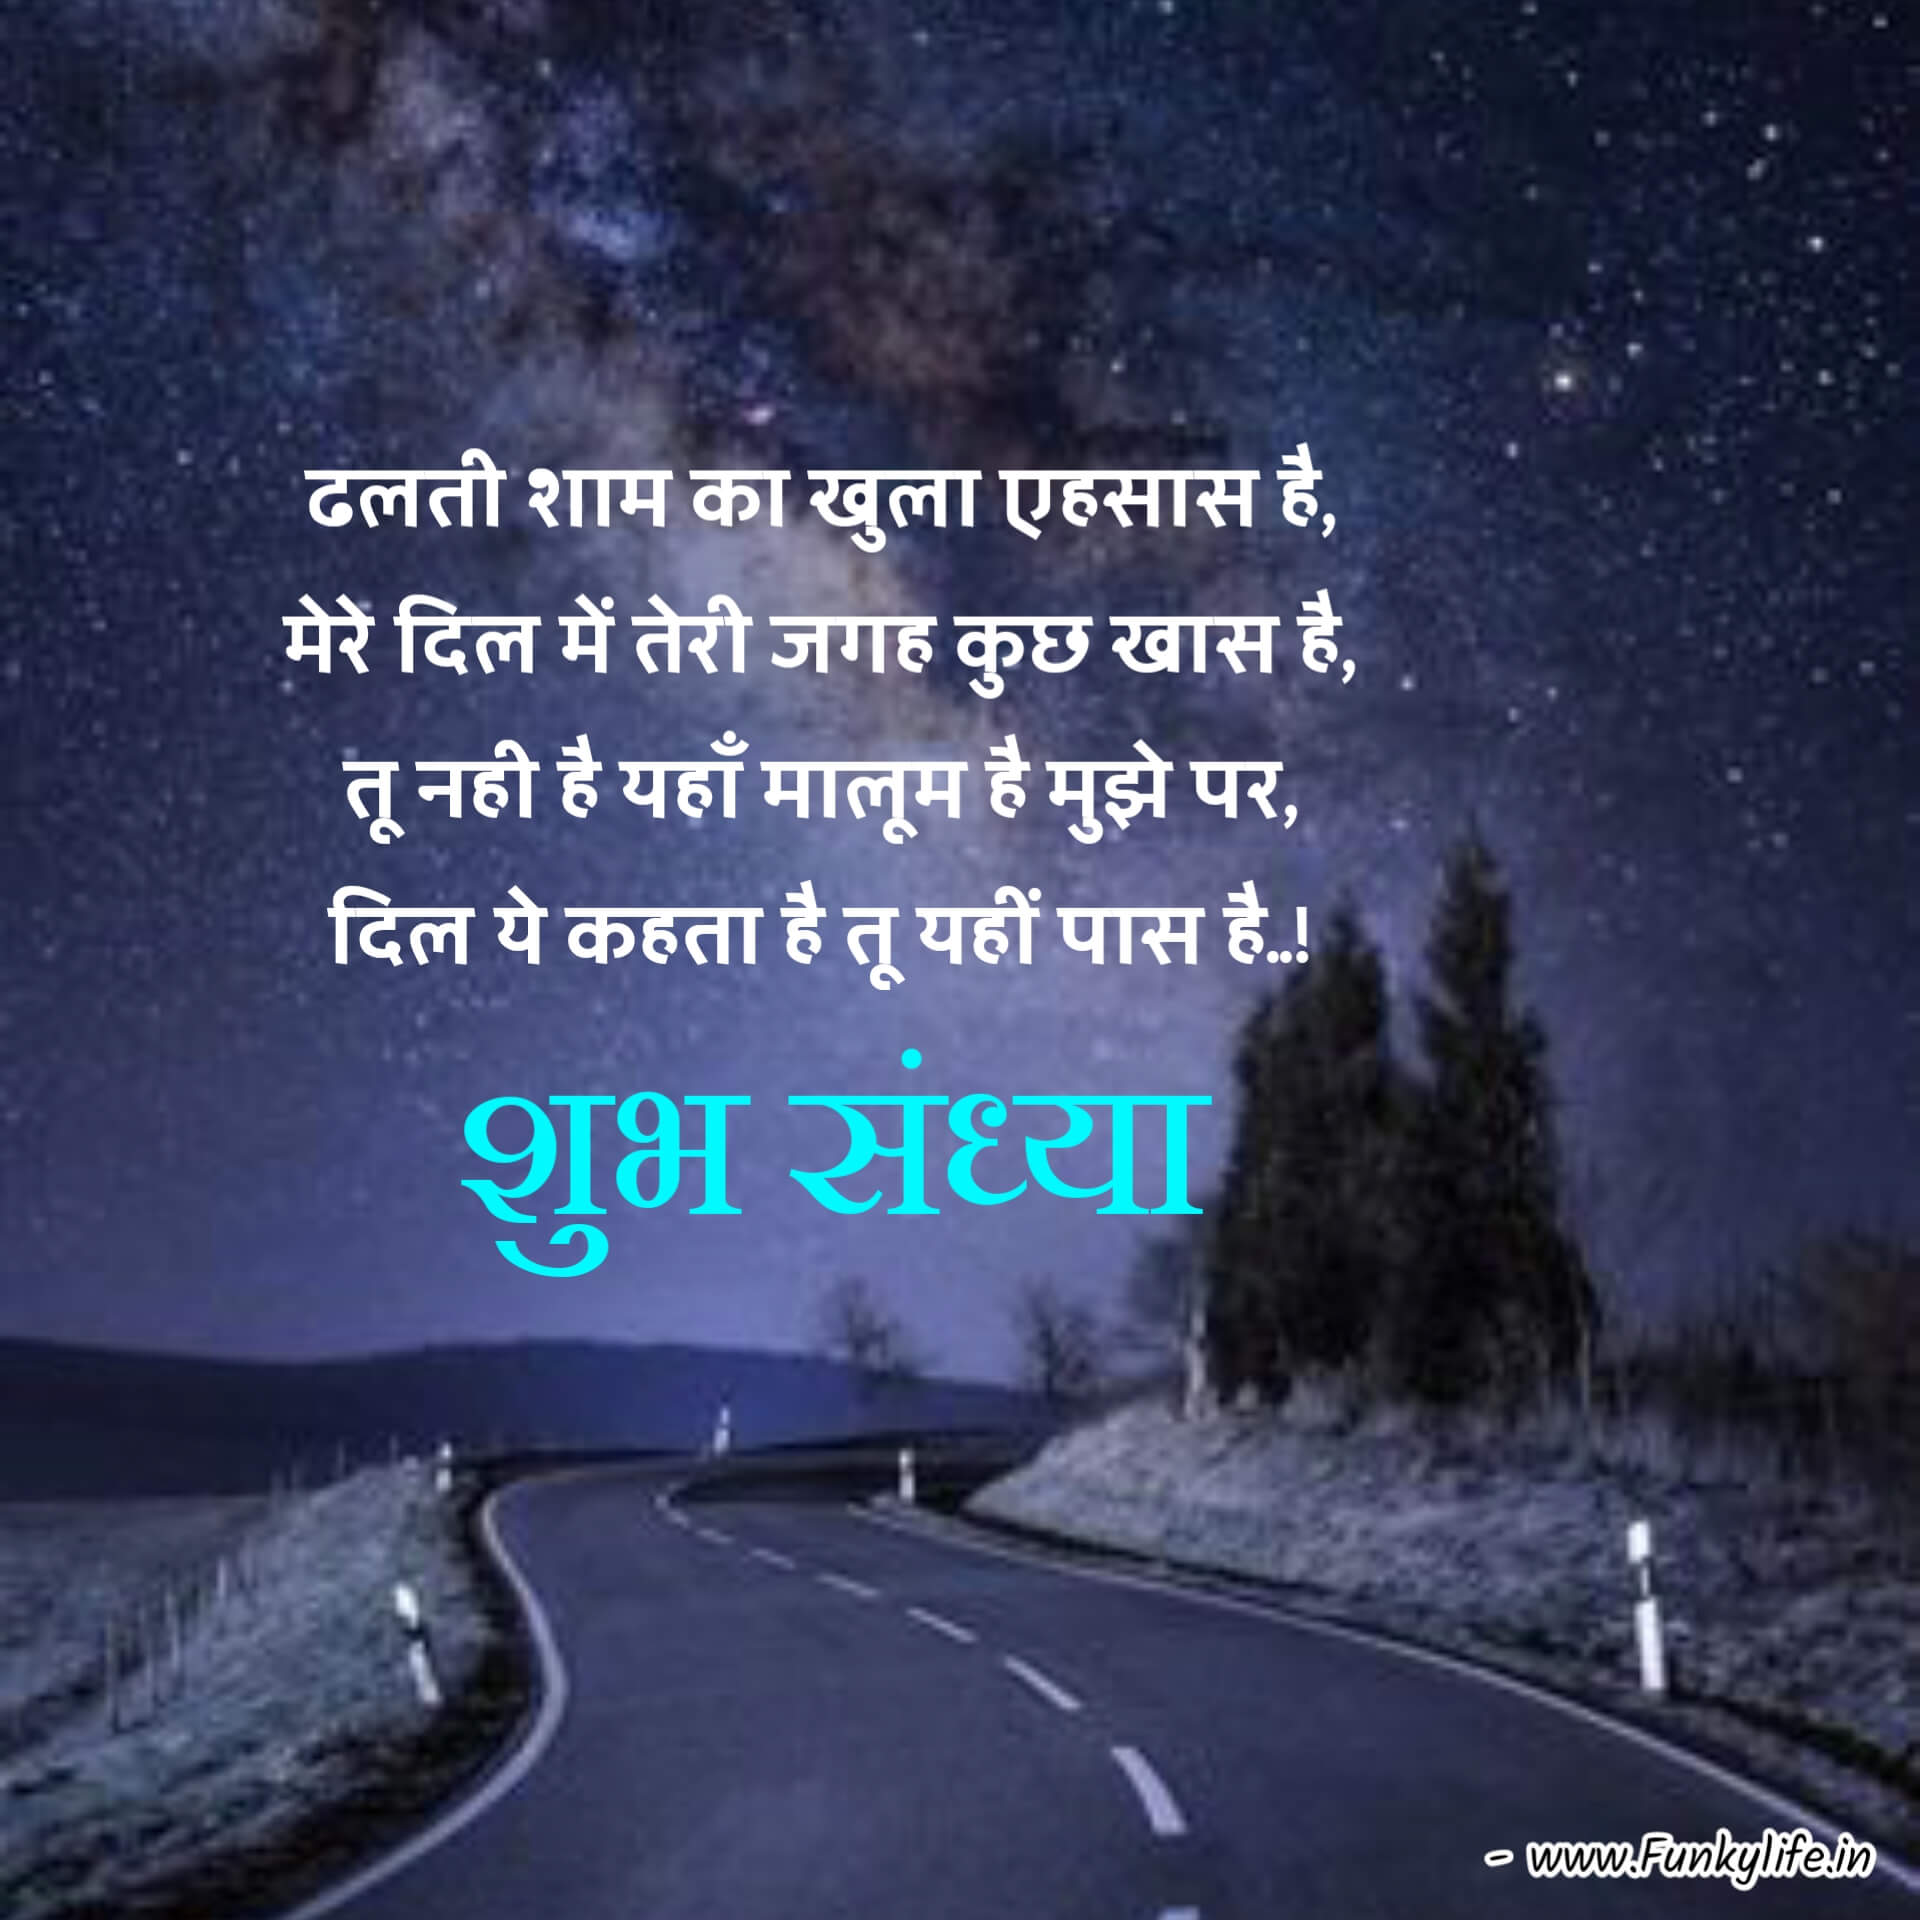 Good Evening Images in Hindi